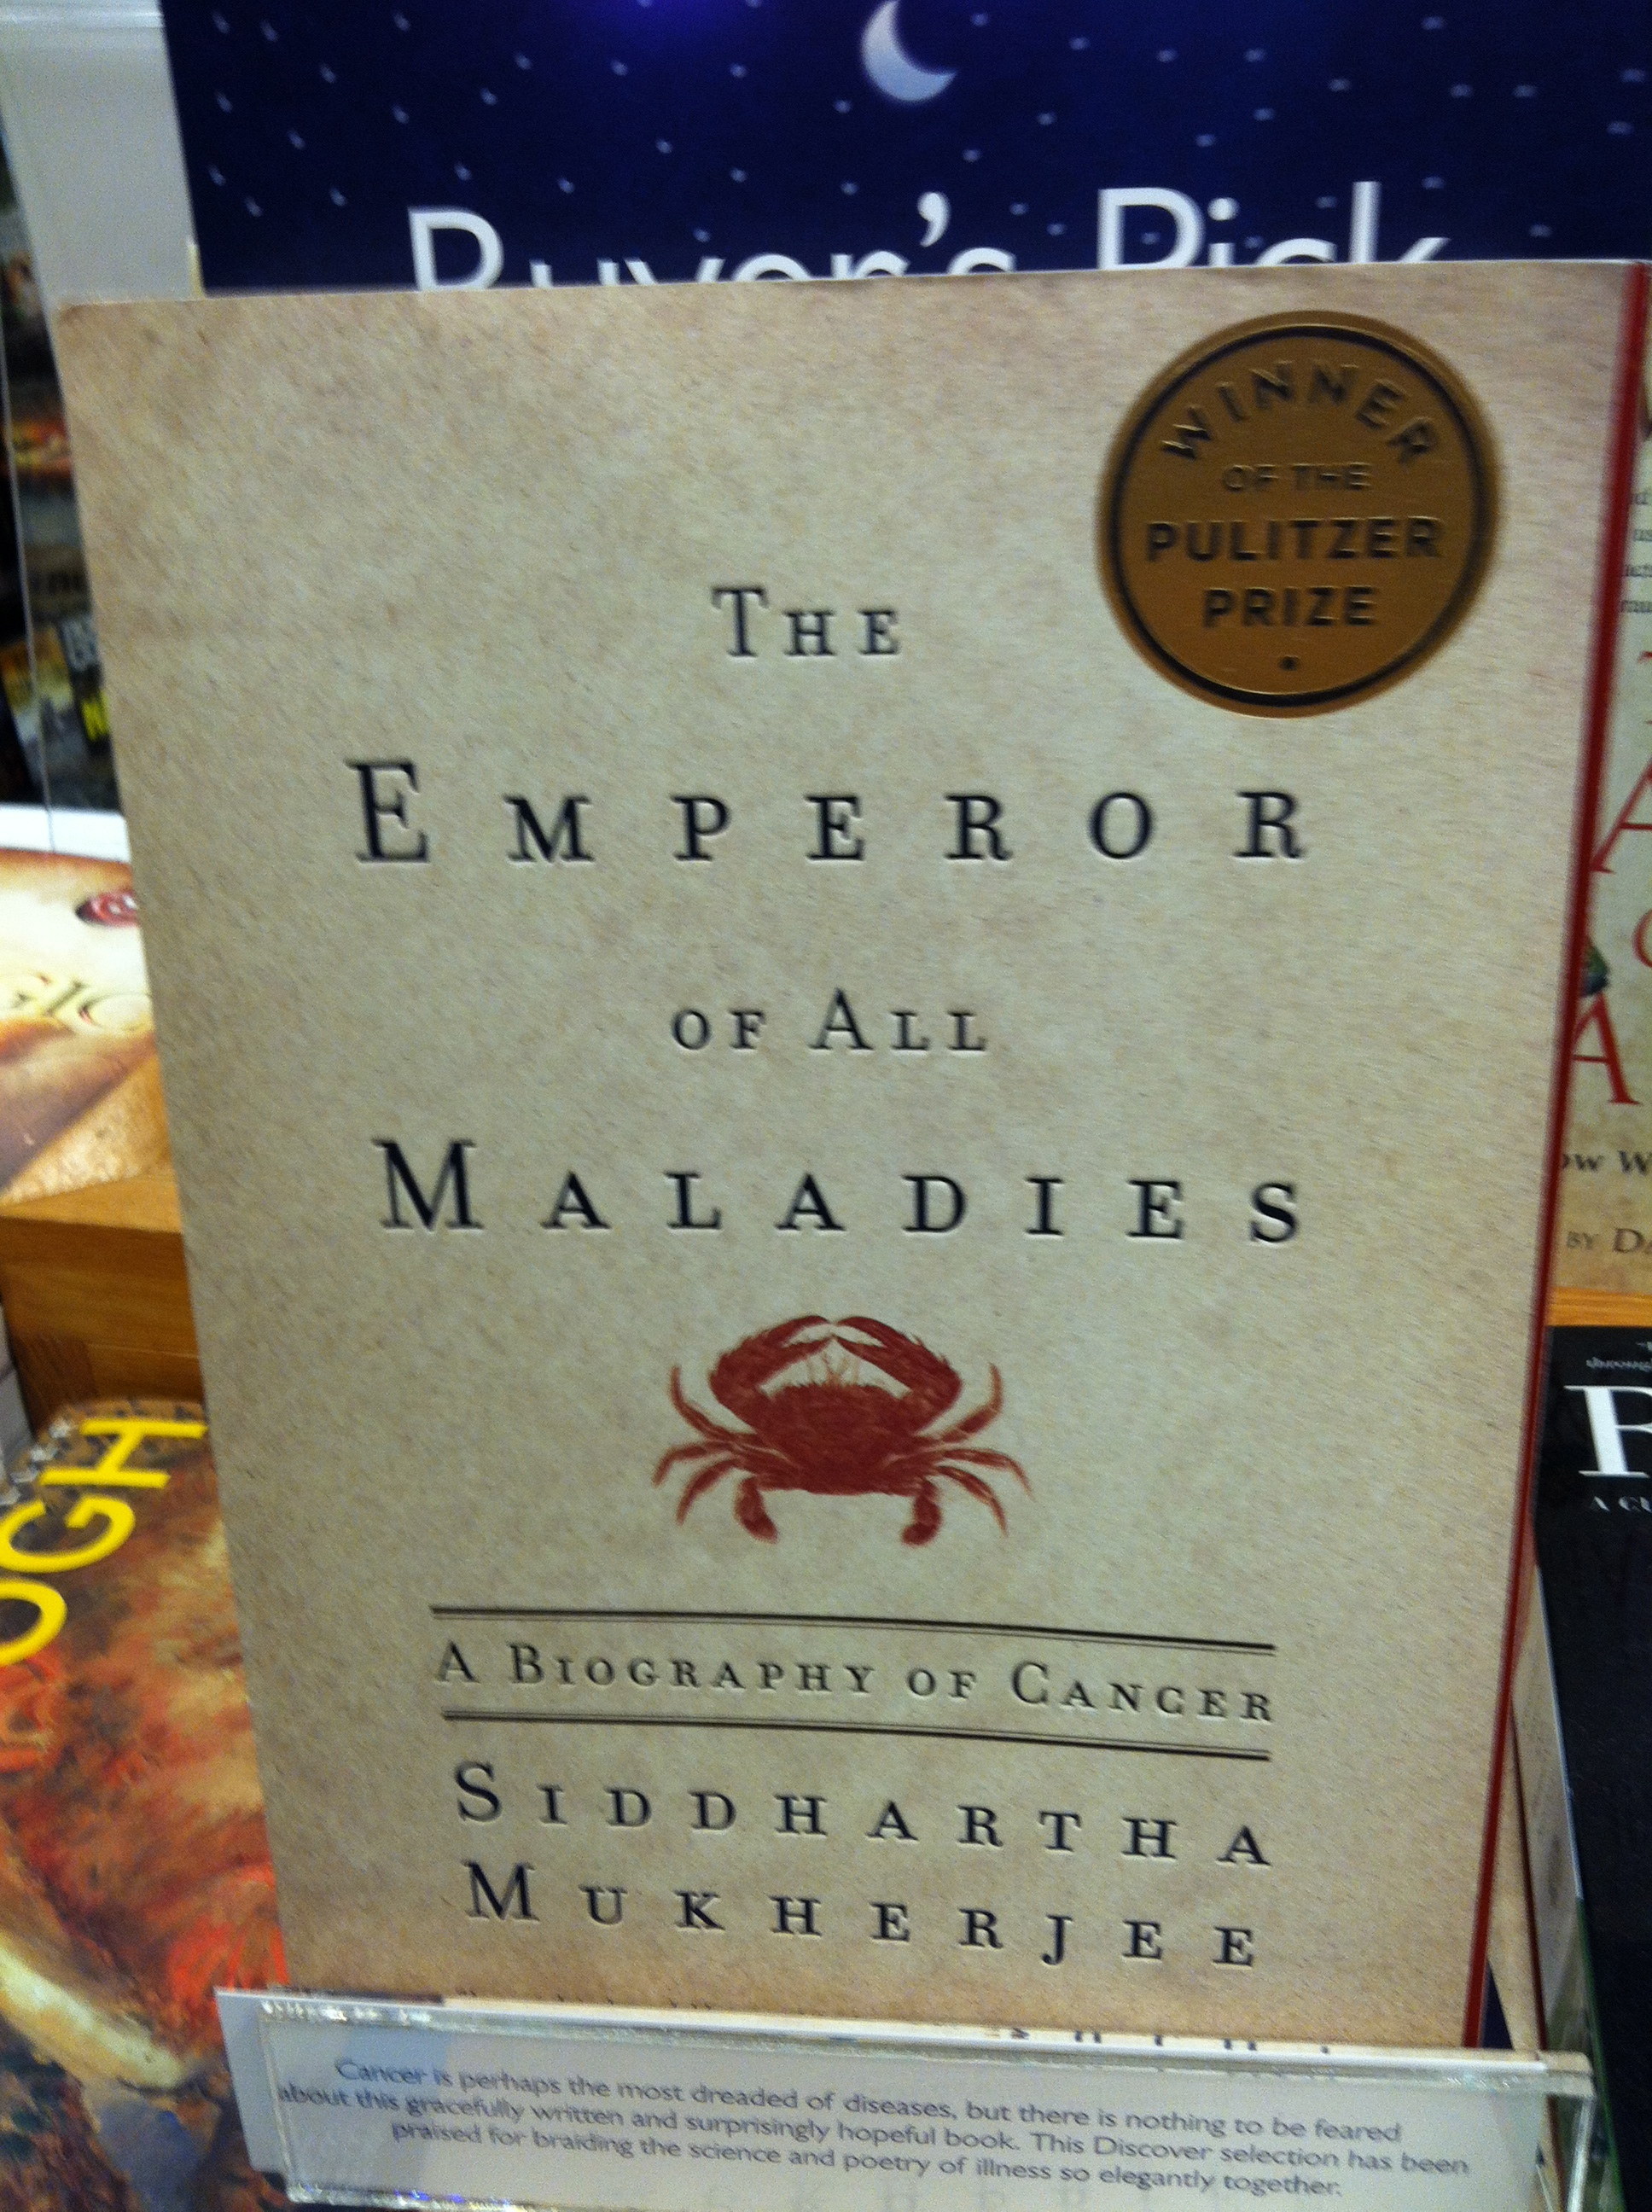 The Emperor Of All Maladies, A Biography Of Cancer, Is The Pulitzer Prize